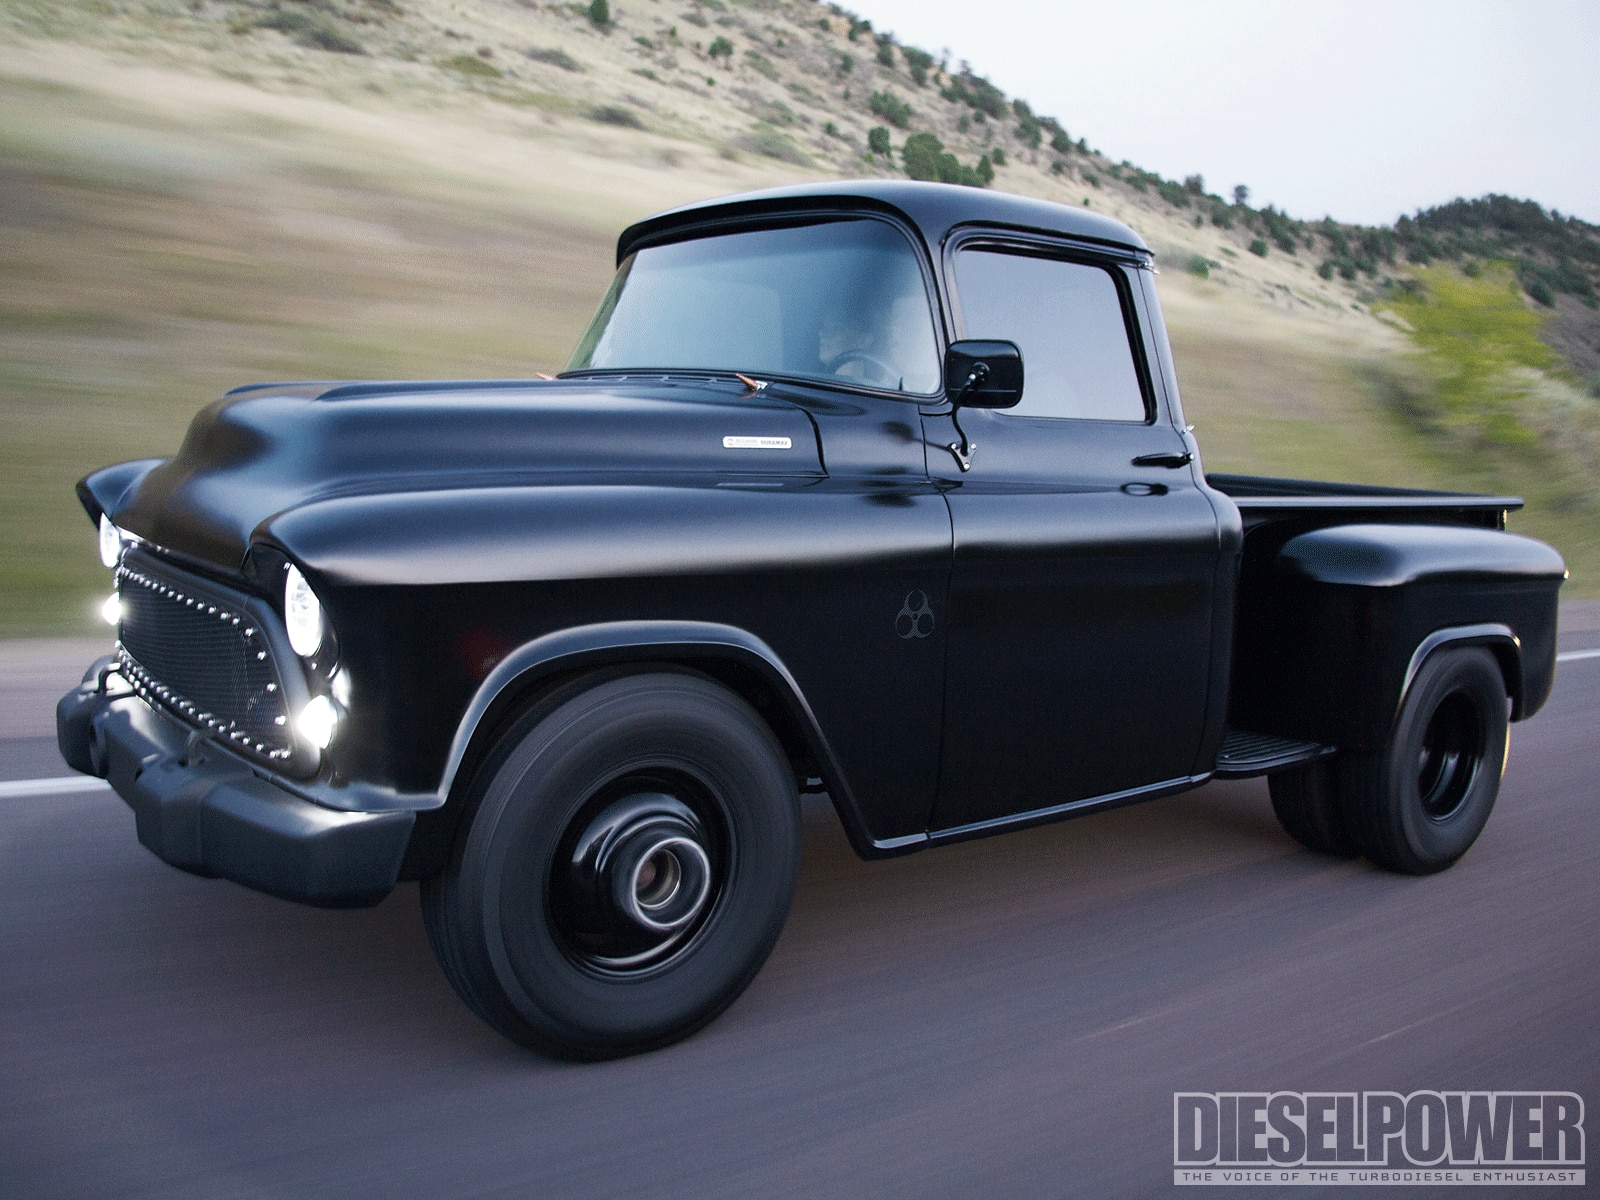 1957 Chevy Pickup Duramax - Diesel Power Magazine